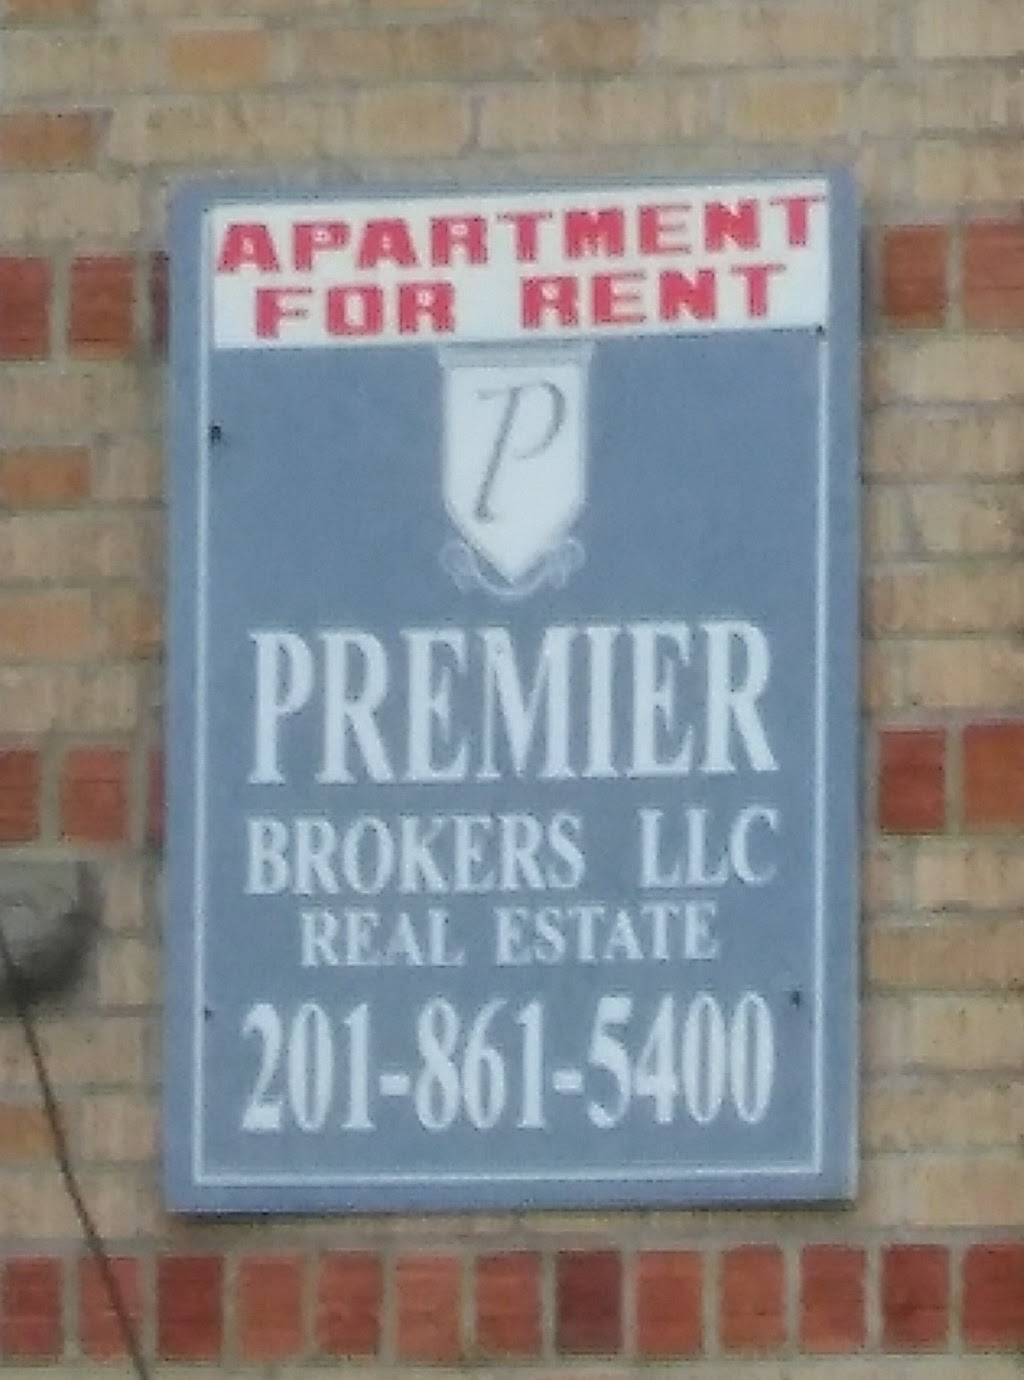 Premier Brokers LLC Real Estate - real estate agency  | Photo 1 of 1 | Address: 6600 Boulevard E STE 1EA, West New York, NJ 07093, USA | Phone: (201) 861-5400